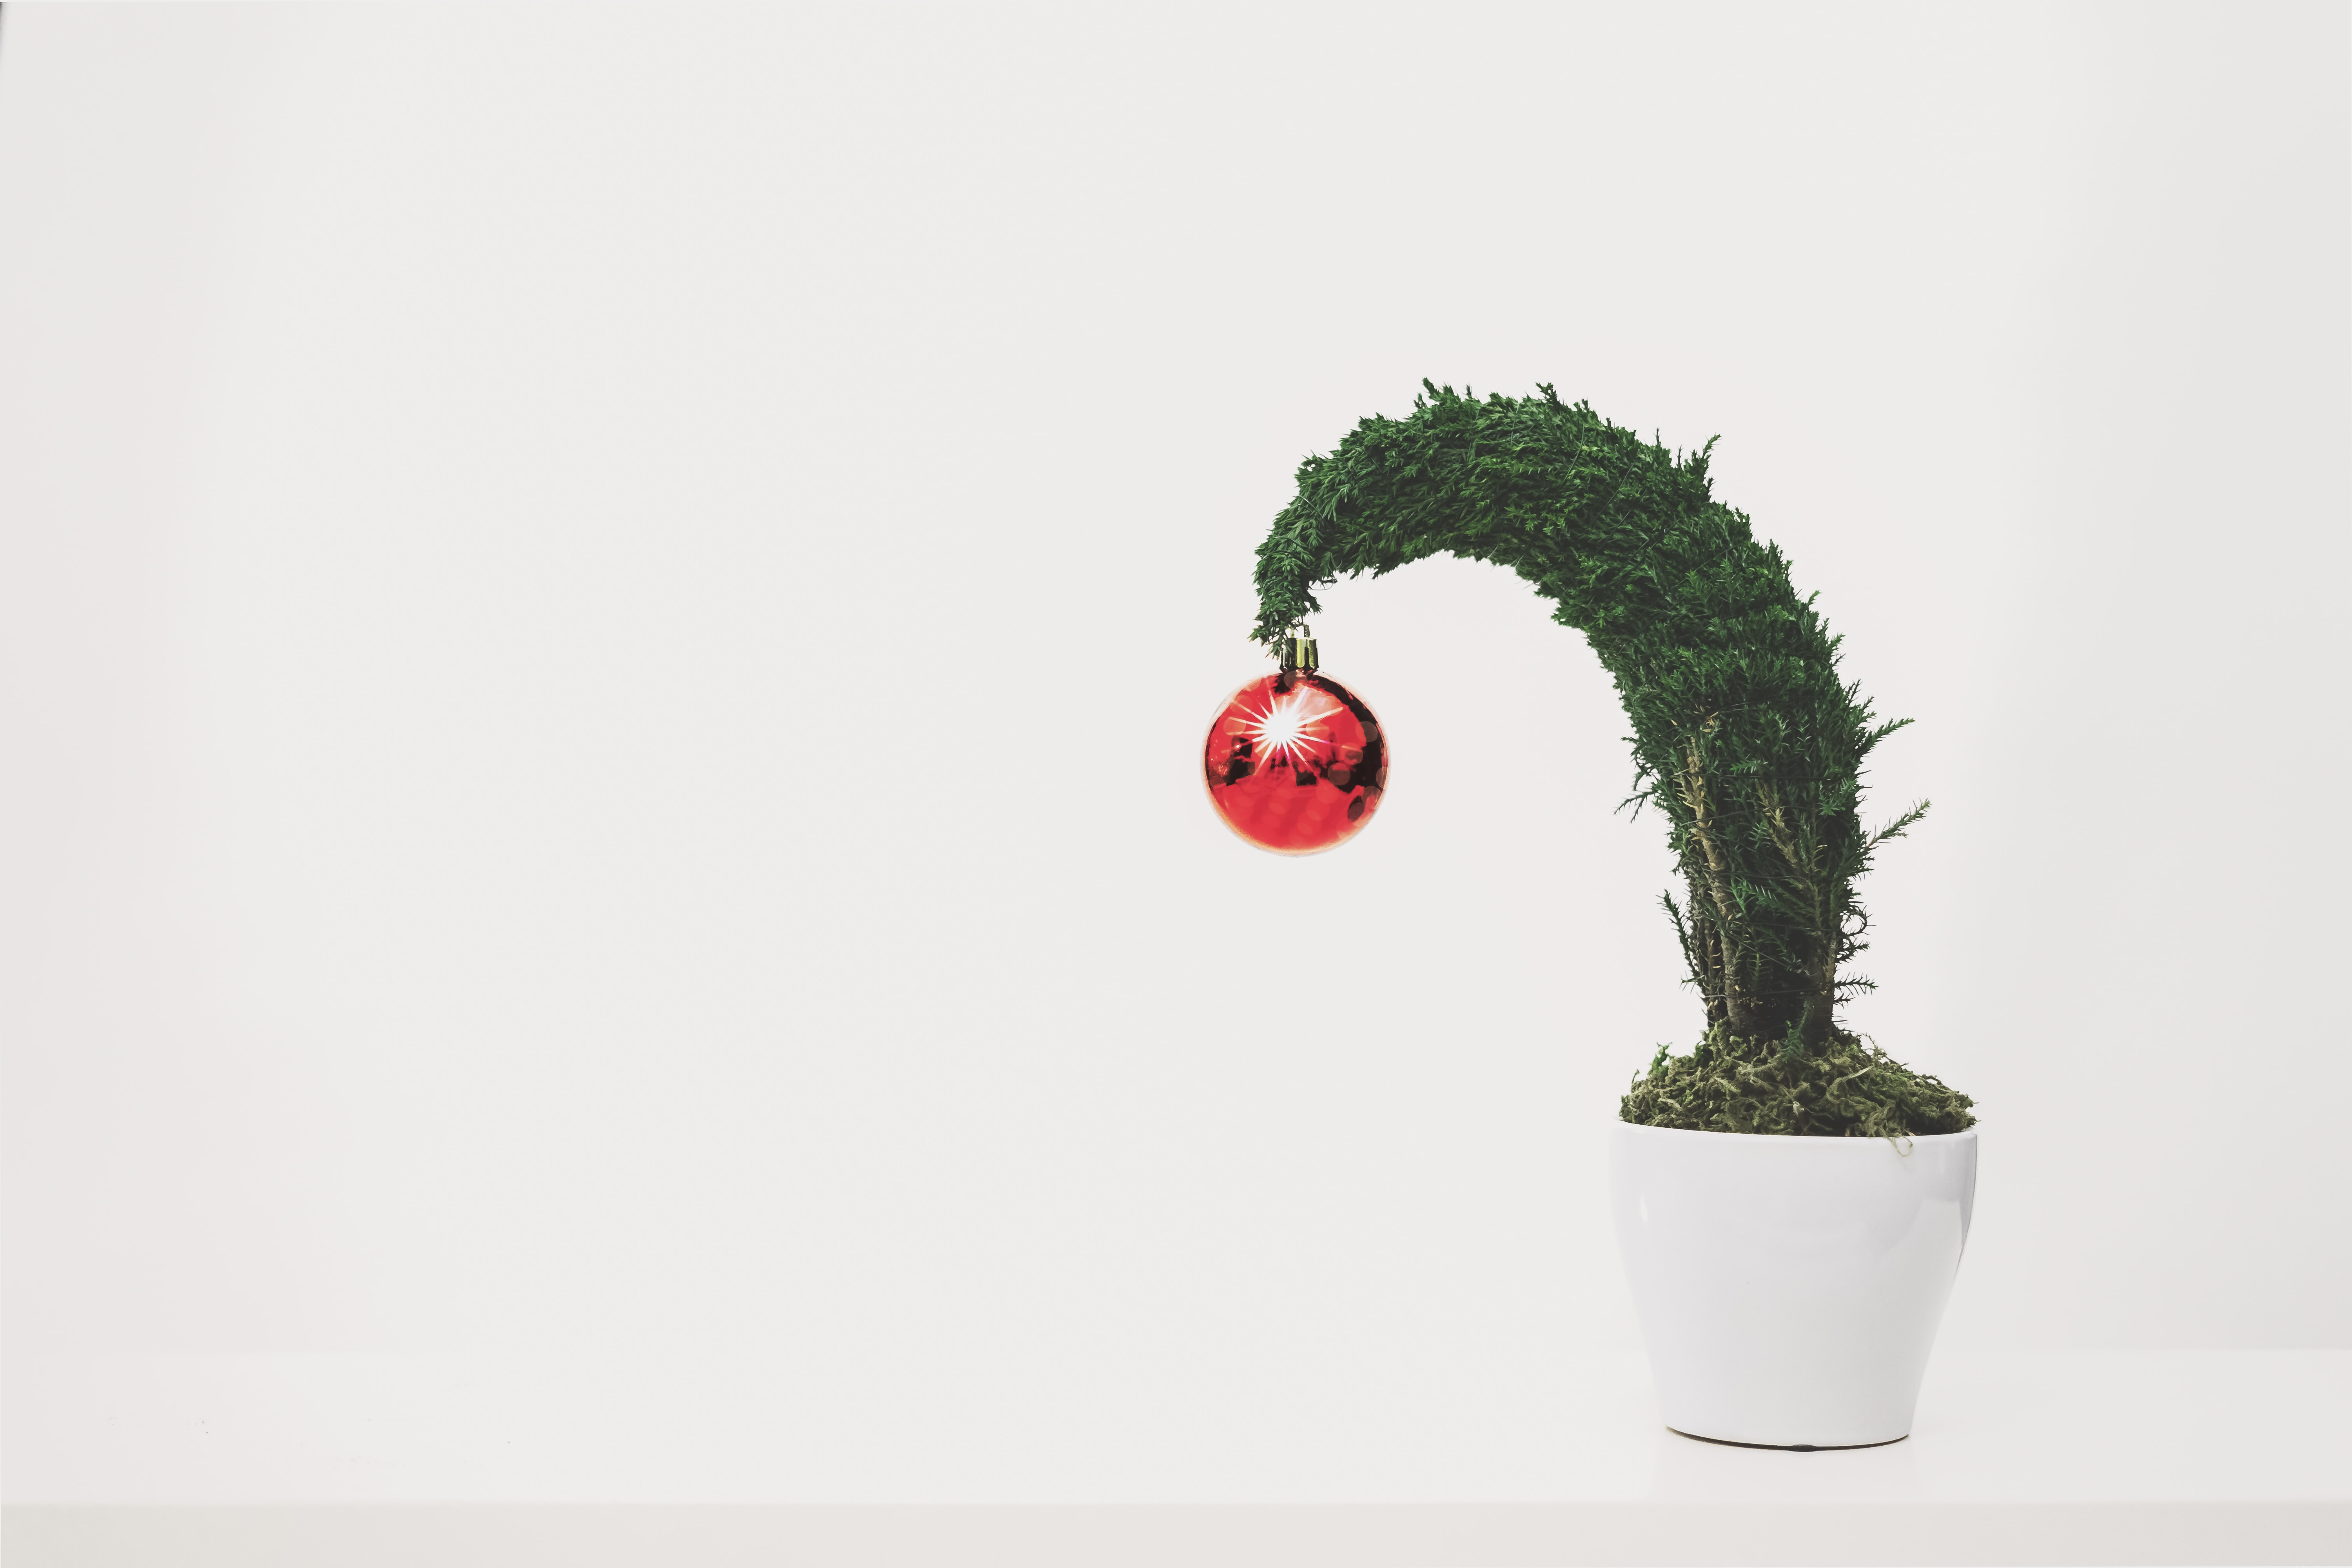 green leafed plant with red bauble